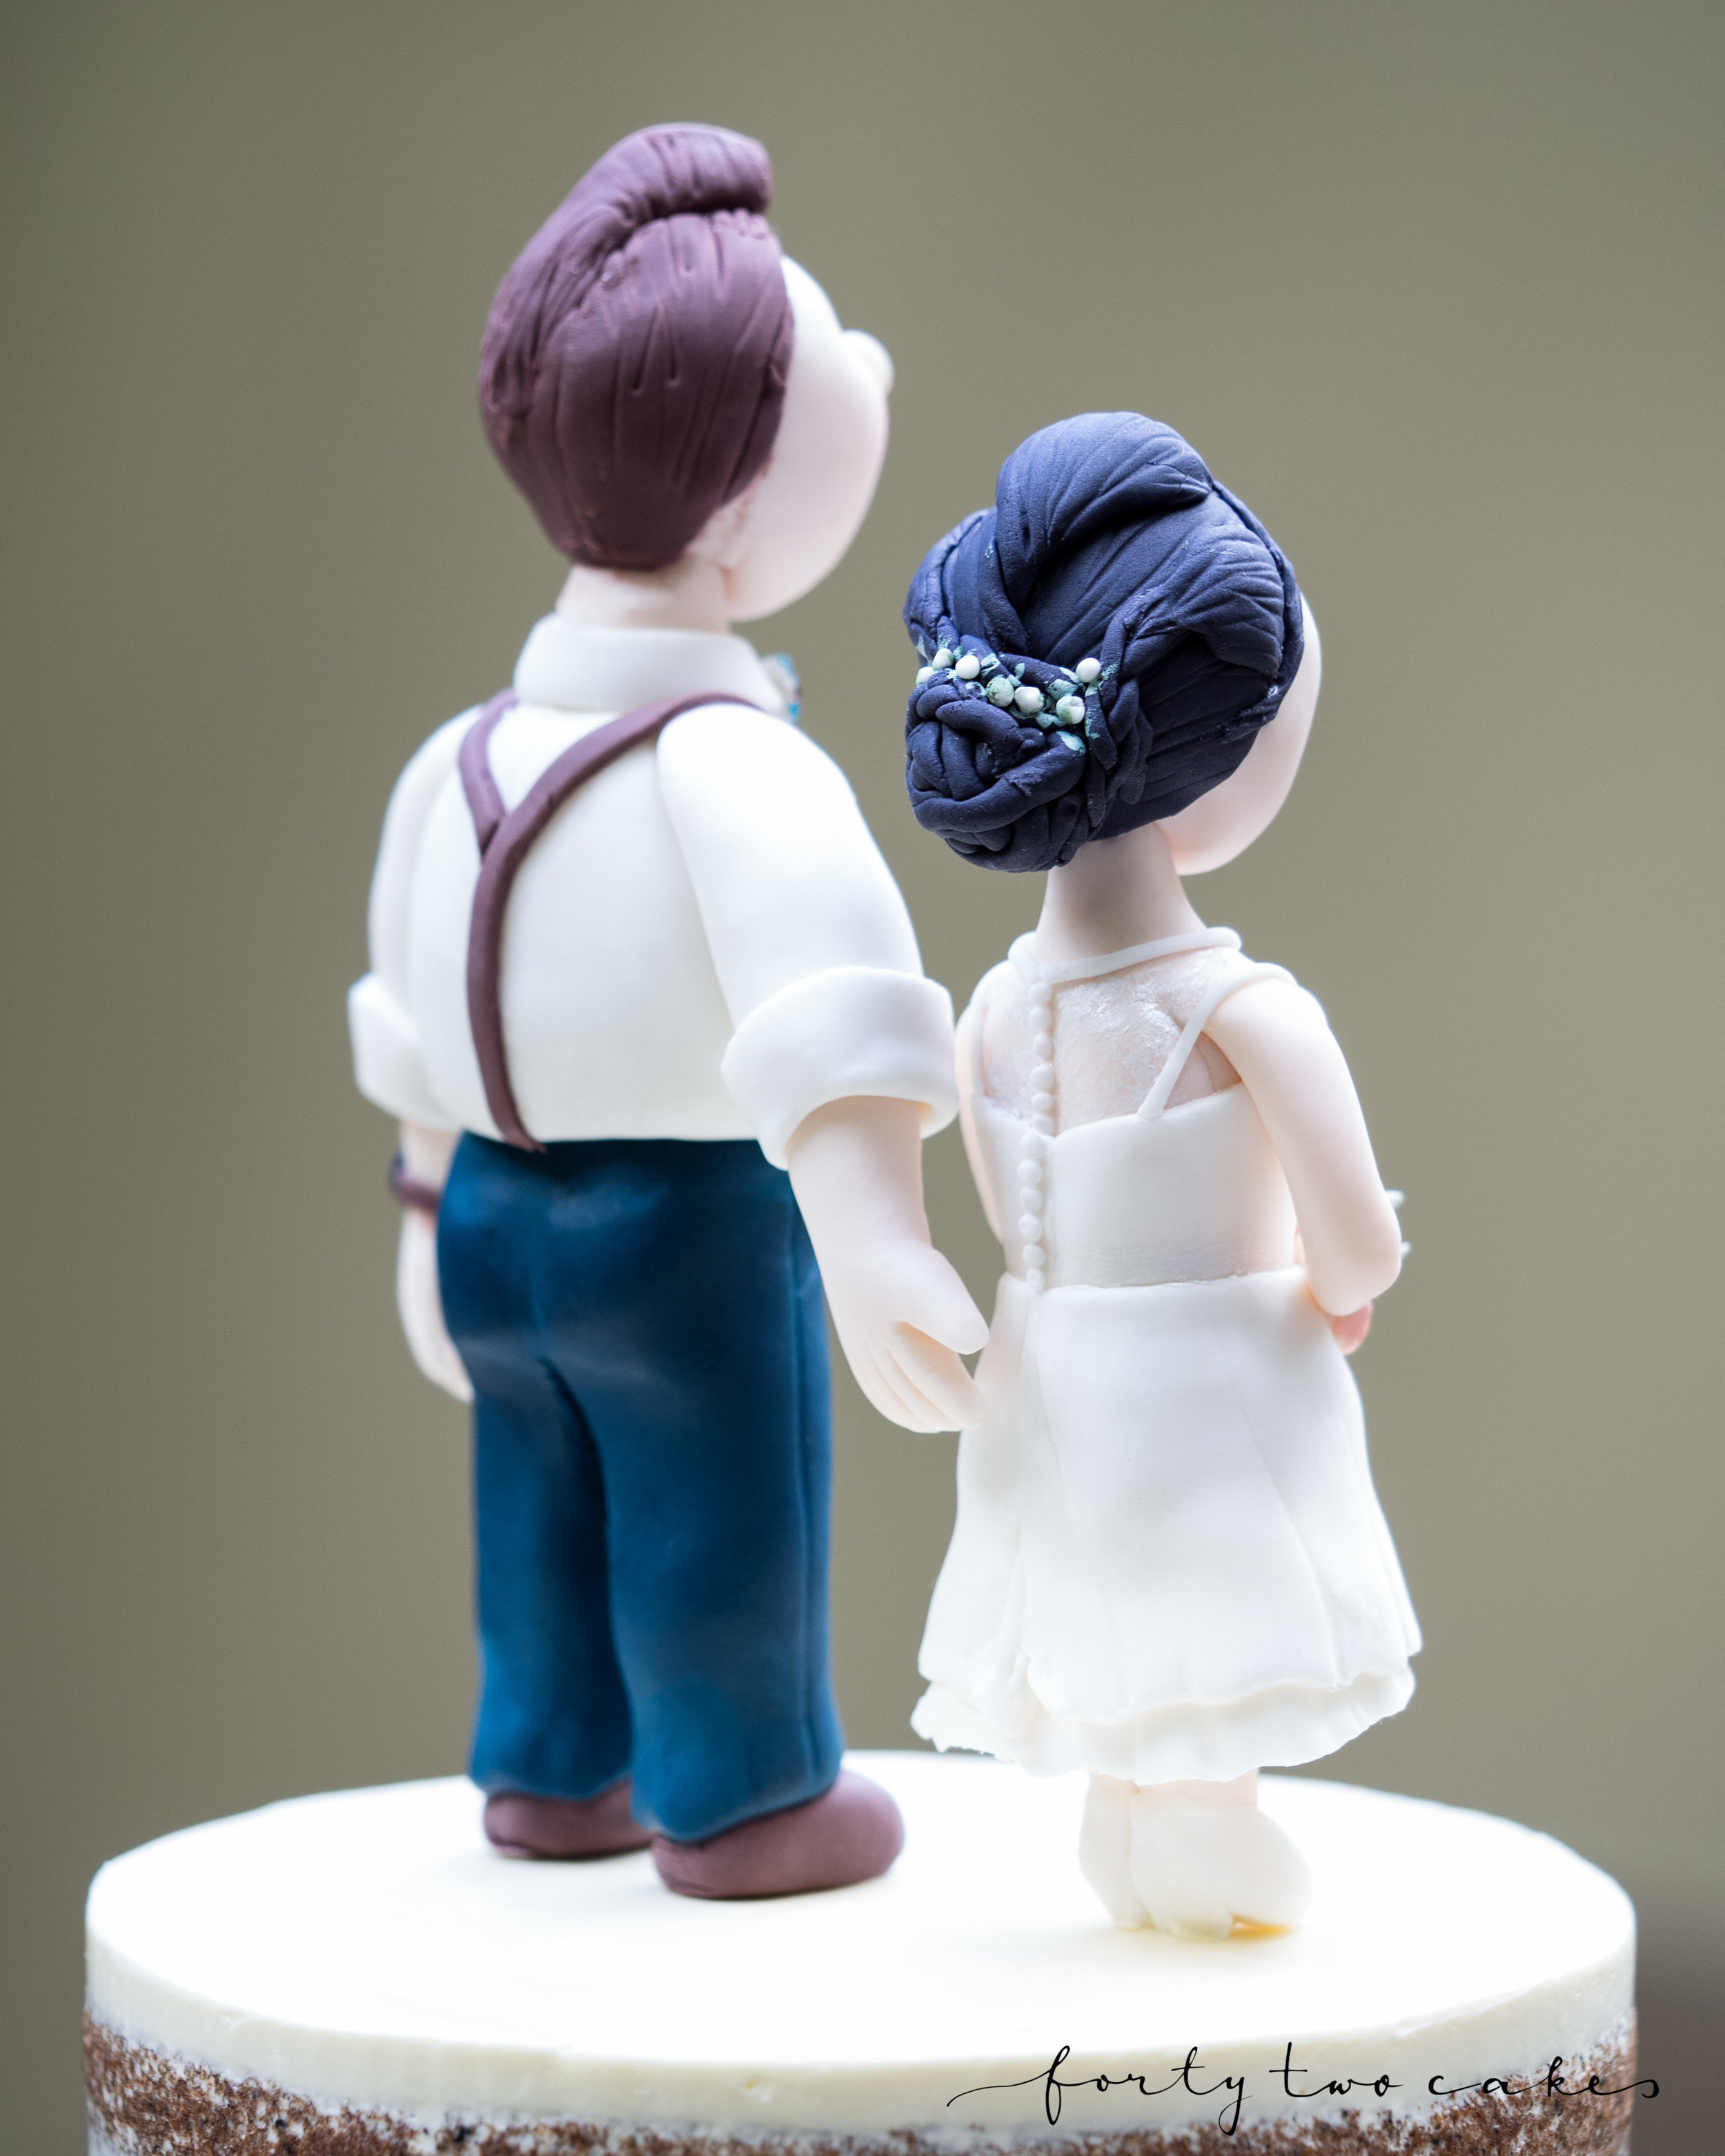 Forty-Two Cakes - Sugar Art-02-3.jpg